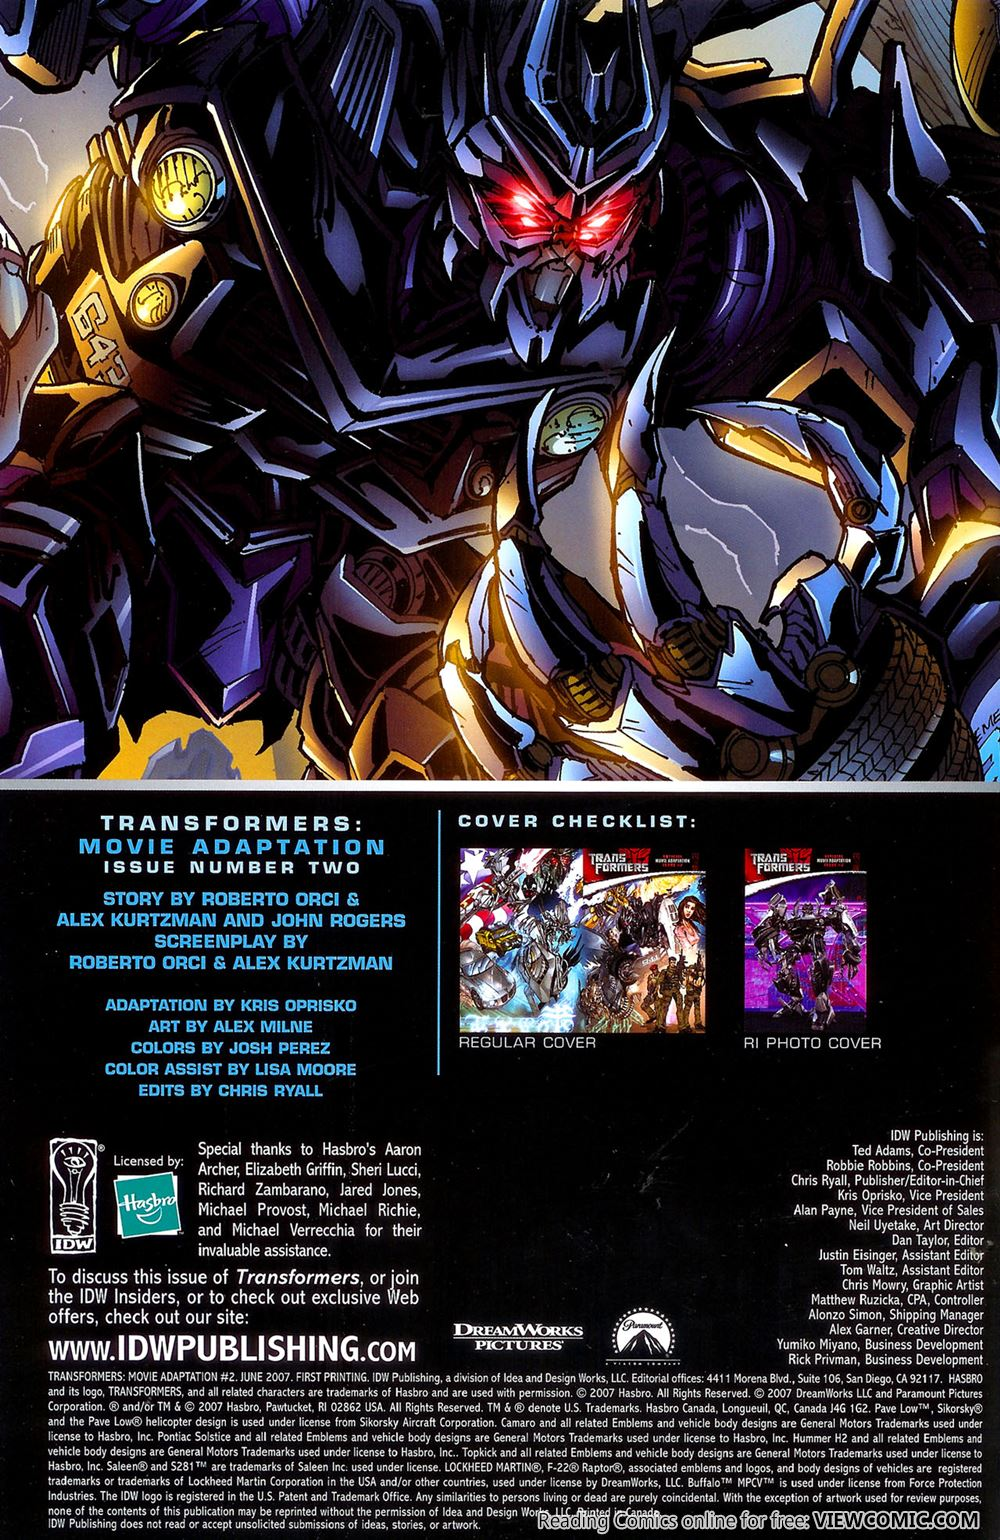 Transformers – Movie Adaptation 02 (of 4) (2007) | Viewcomic